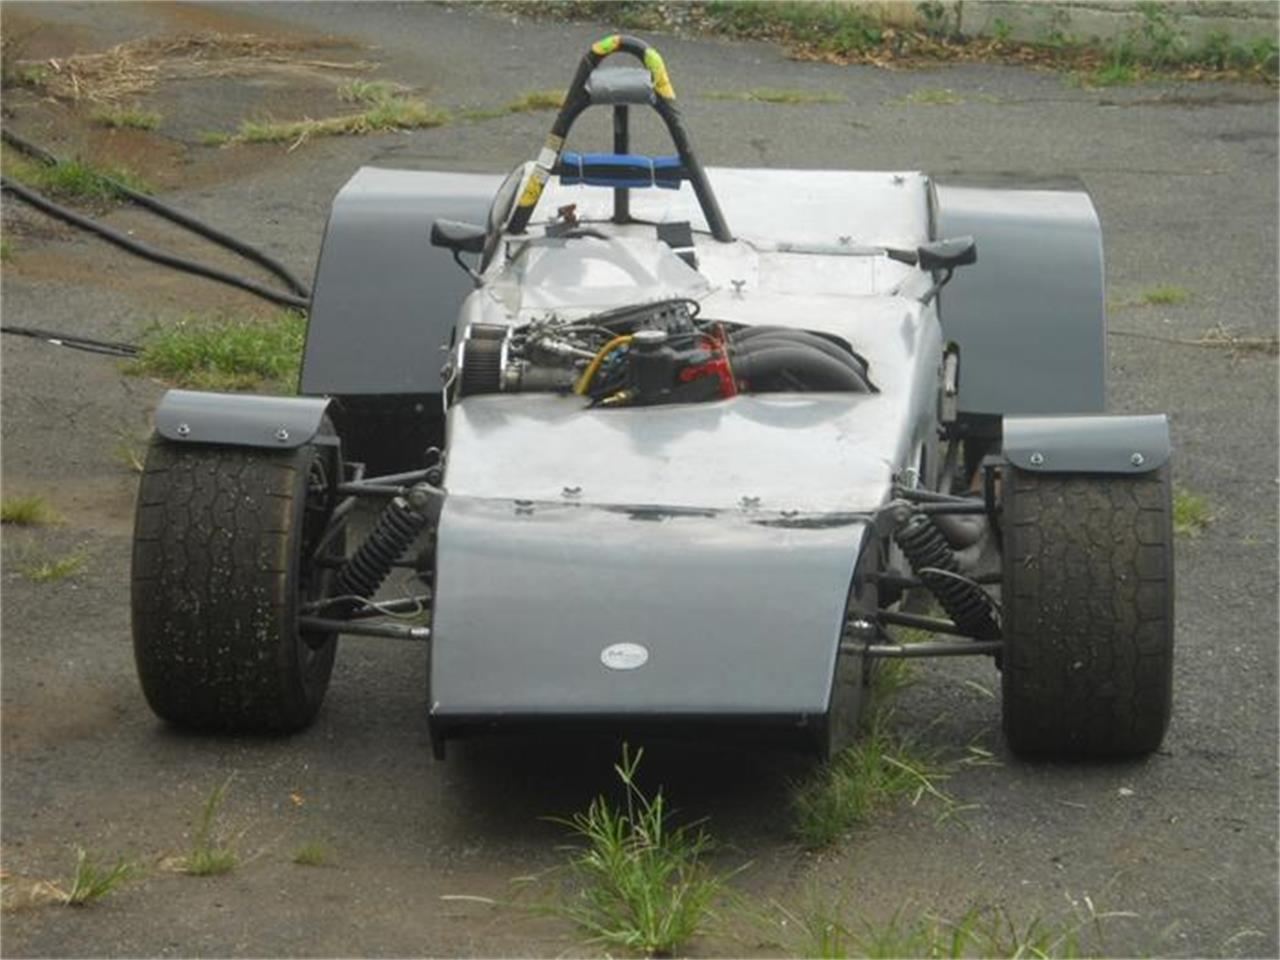 1972 Unspecified Race Car for sale in Stratford, CT – photo 13